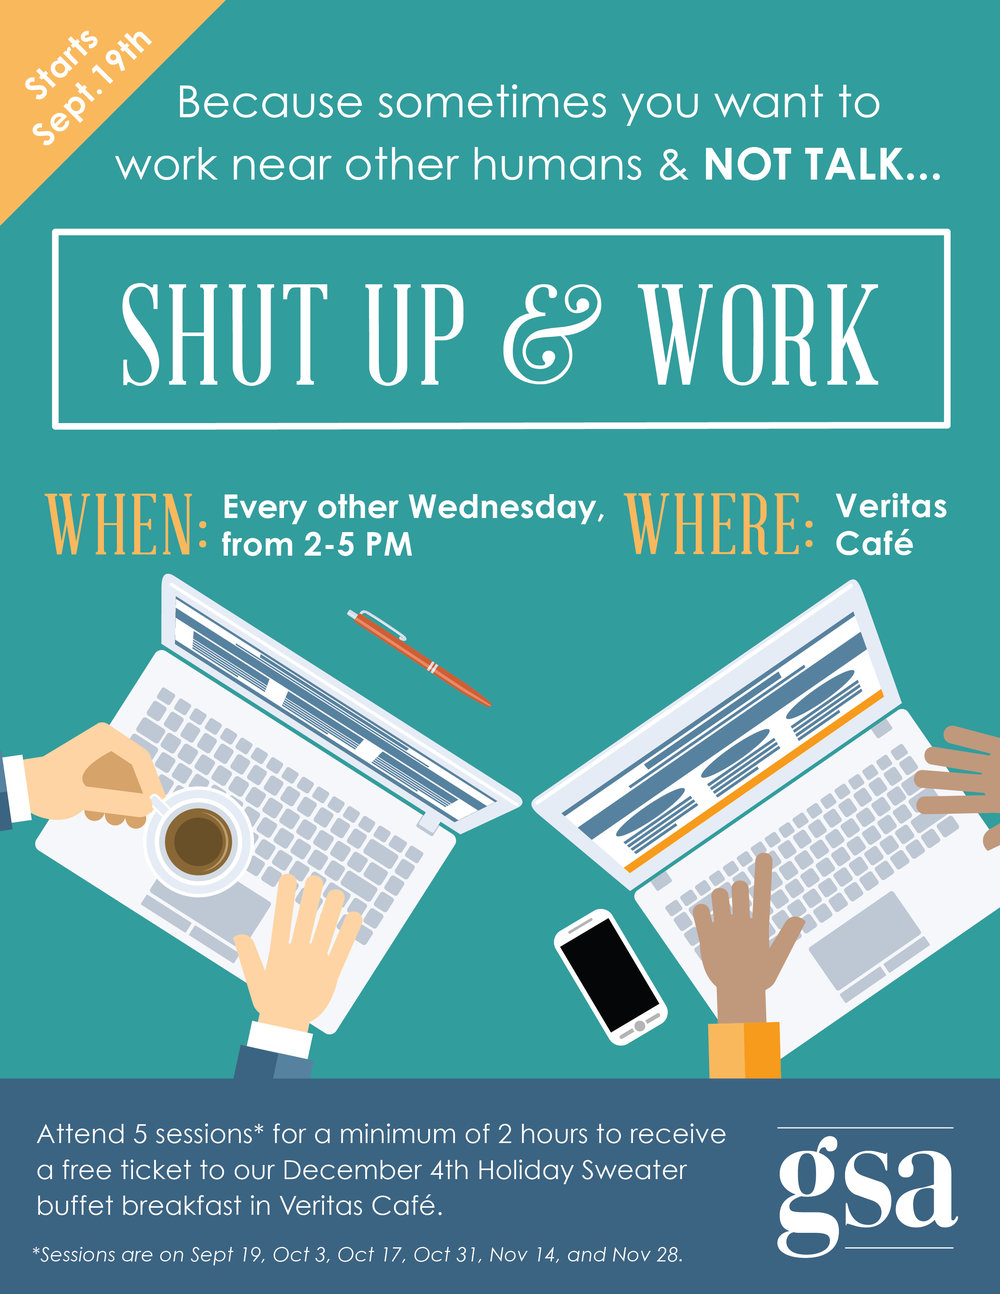 Shut Up & Work. Every other Wednesday from 2-5 in Veritas Cafe. Attend a minimum of 5 sessions for 2 hours and receive a free ticket to our December 4th Holiday Sweater buffet breakfast in Veritas Cafe. Dates are Nov.14 & Nov.28th.